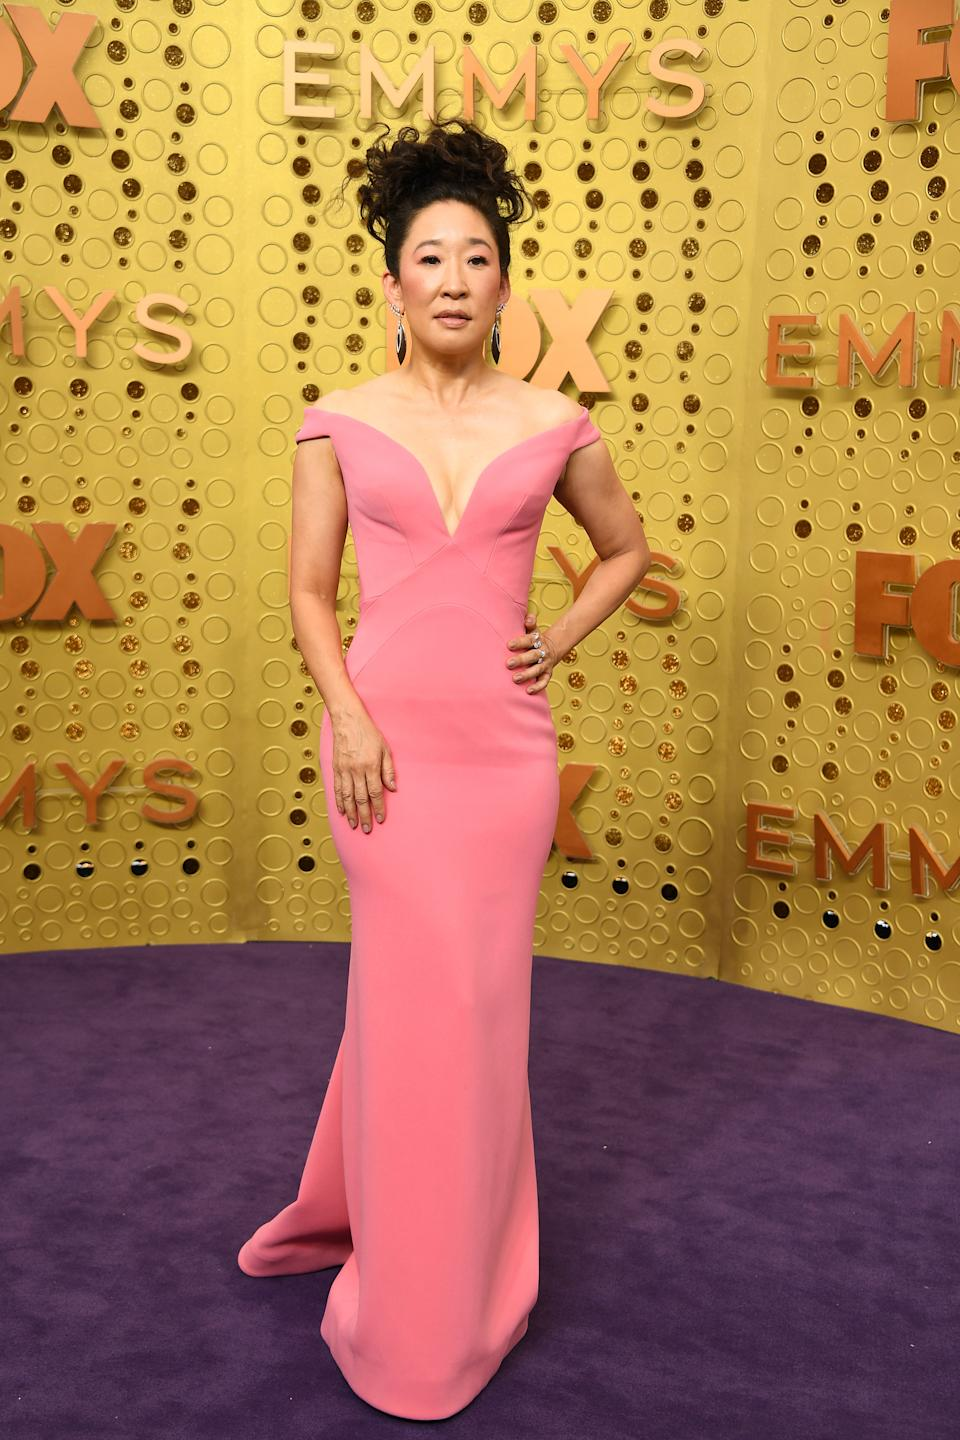 The Canadian 'Killing Eve' star wowed in a pink off-the-shoulder gown by Zac Posen. [Photo: Getty]